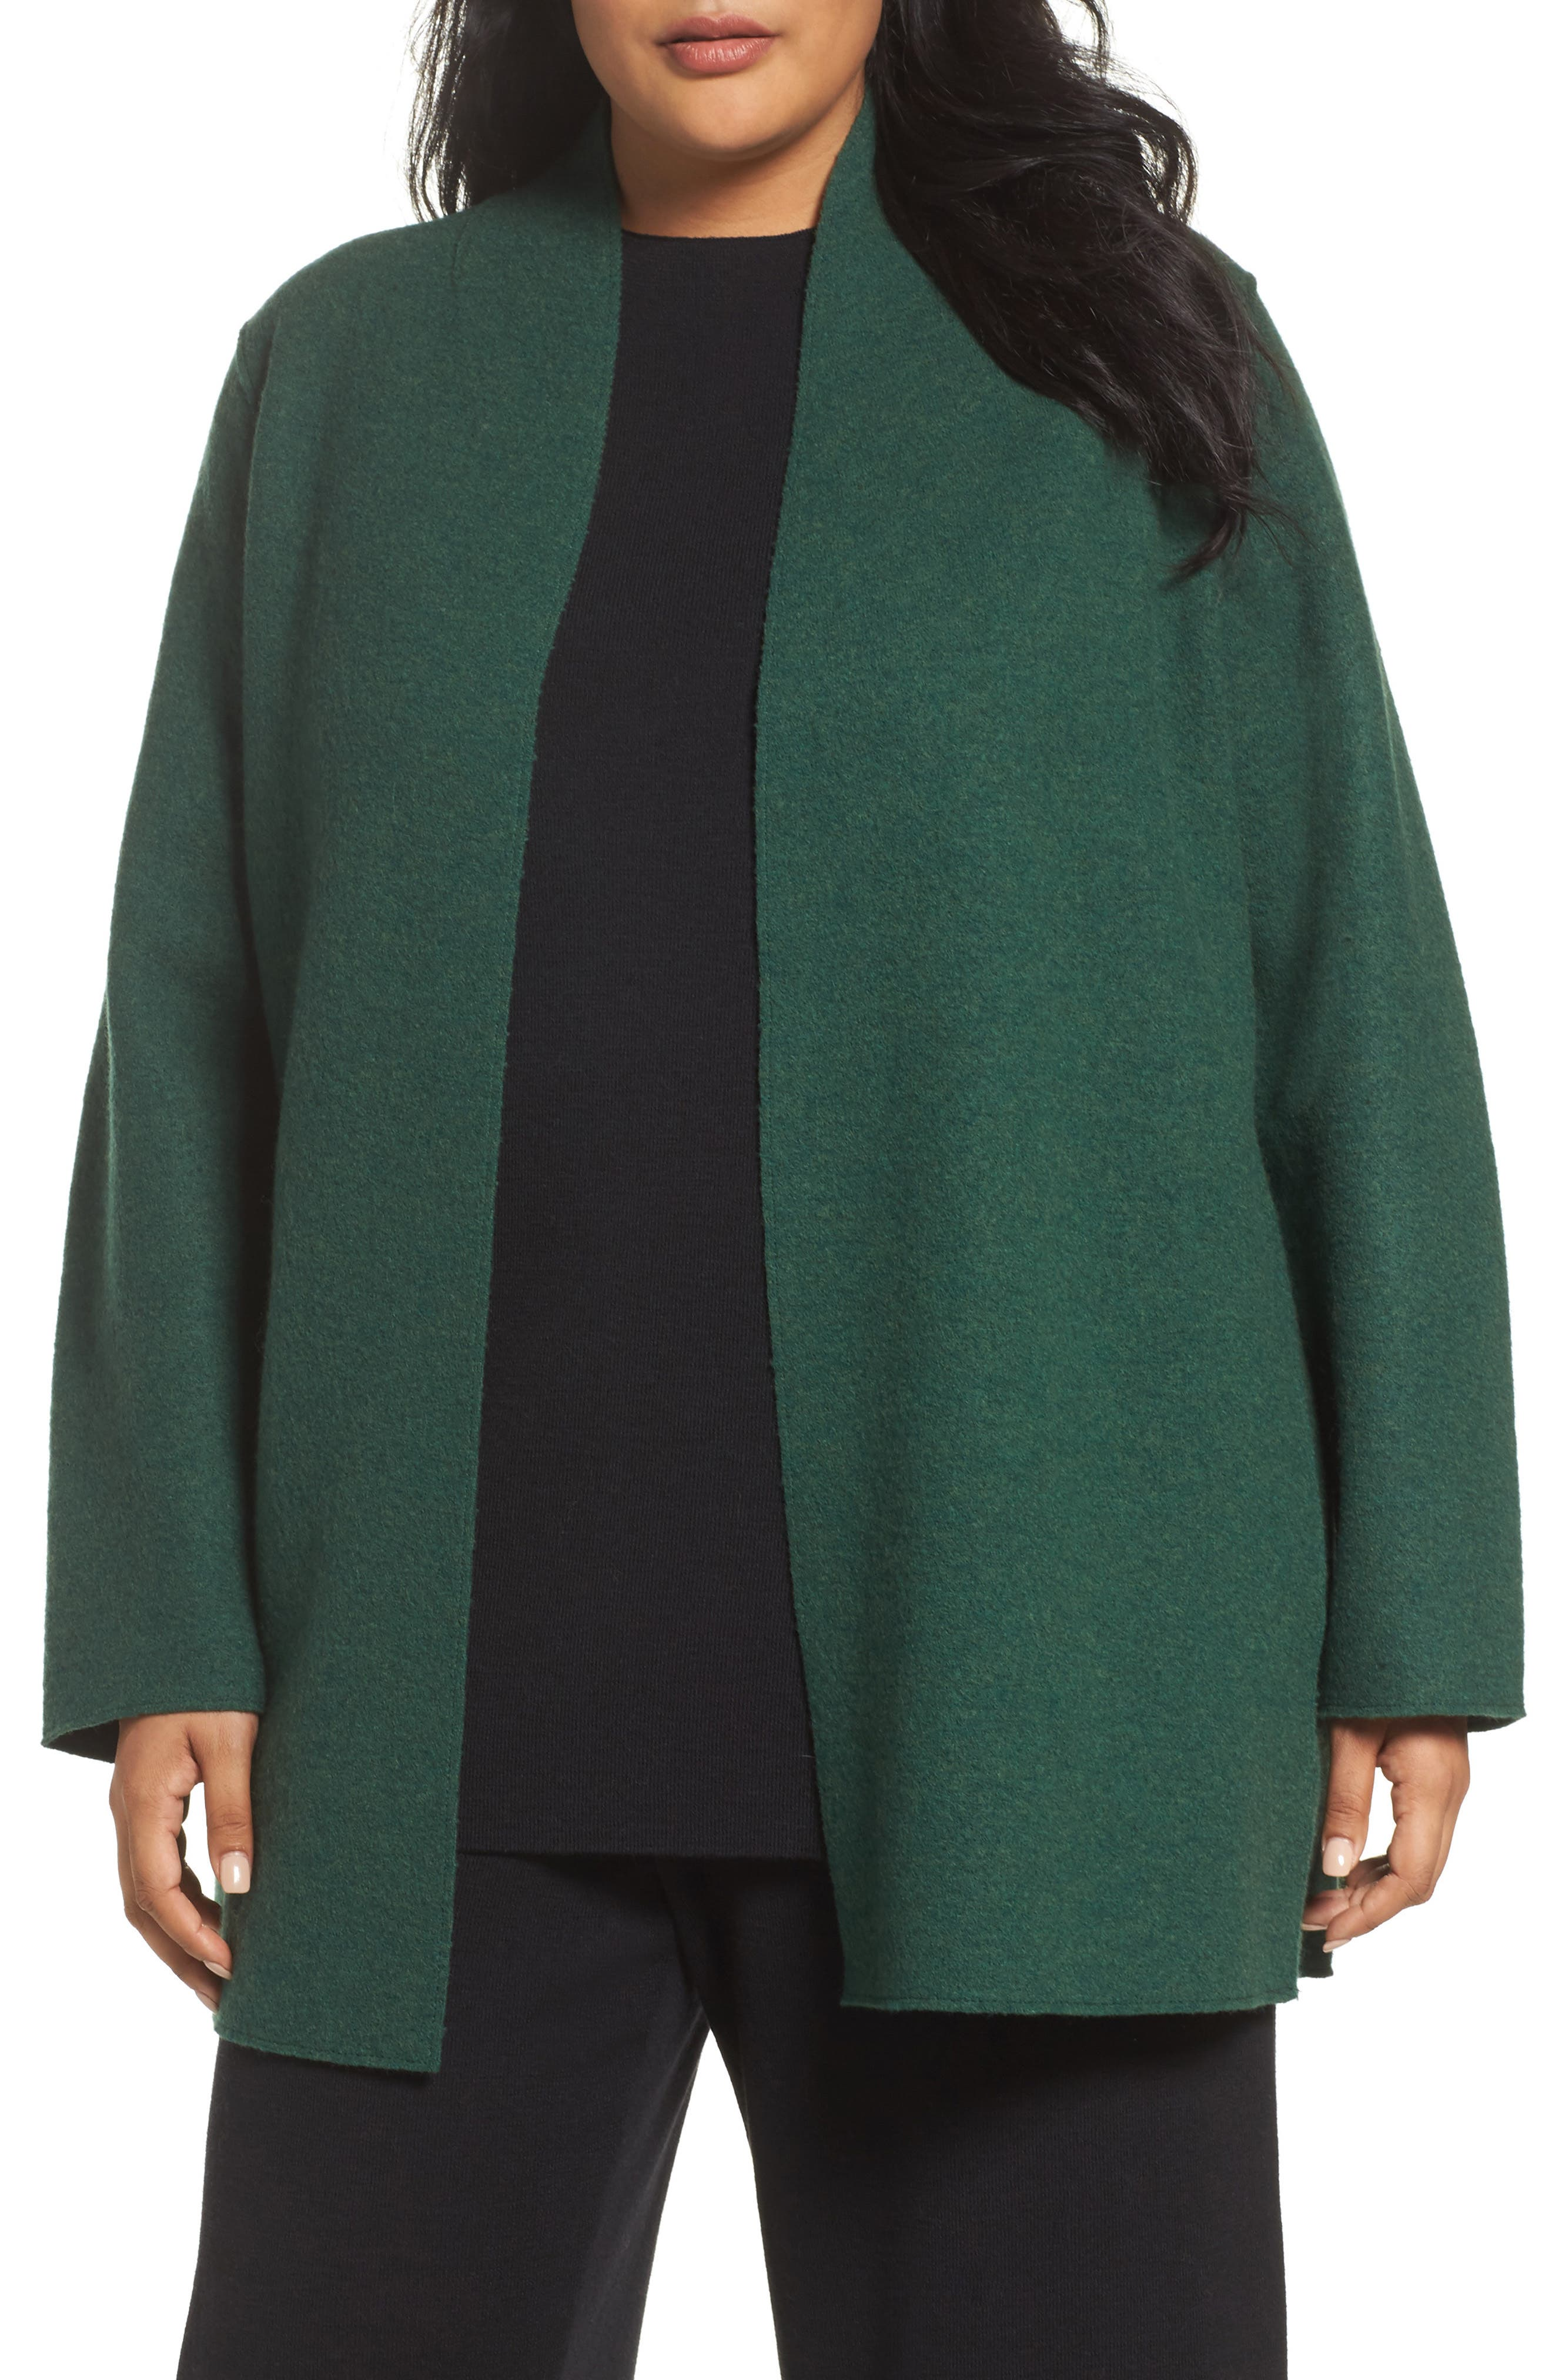 Alternate Image 1 Selected - Eileen Fisher Boiled Wool Jacket (Plus Size)